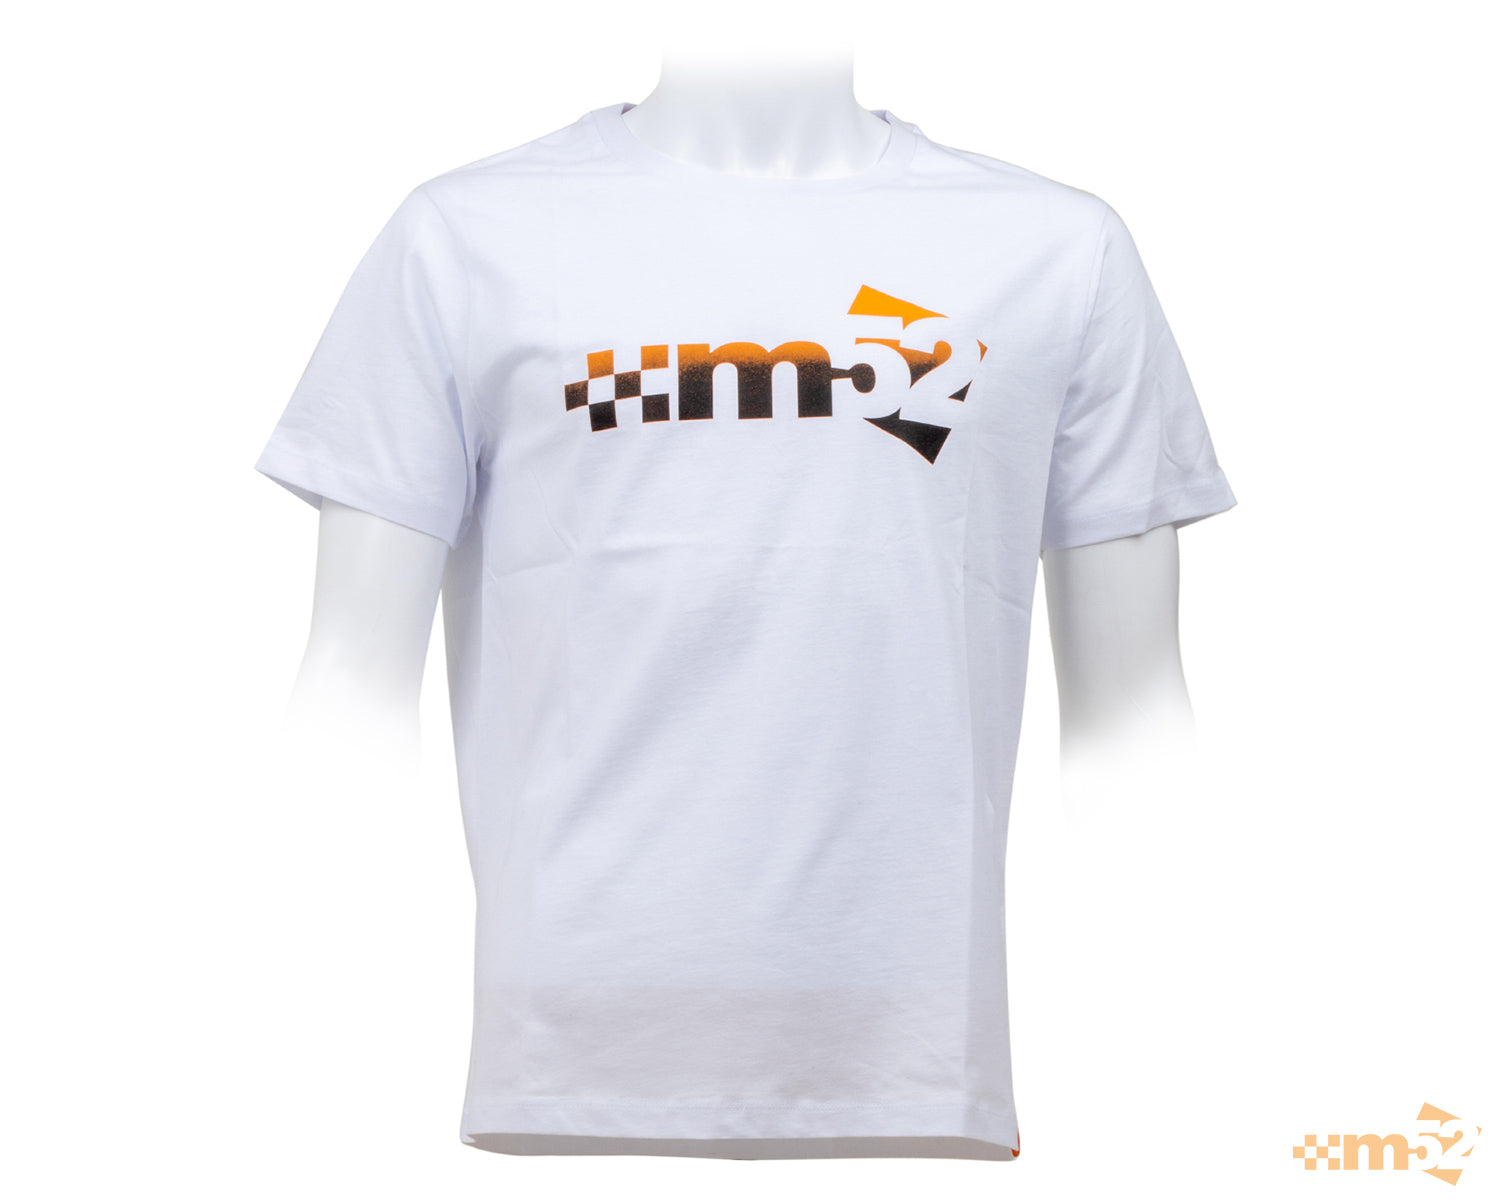 m52 Illusion Tee - mountune52